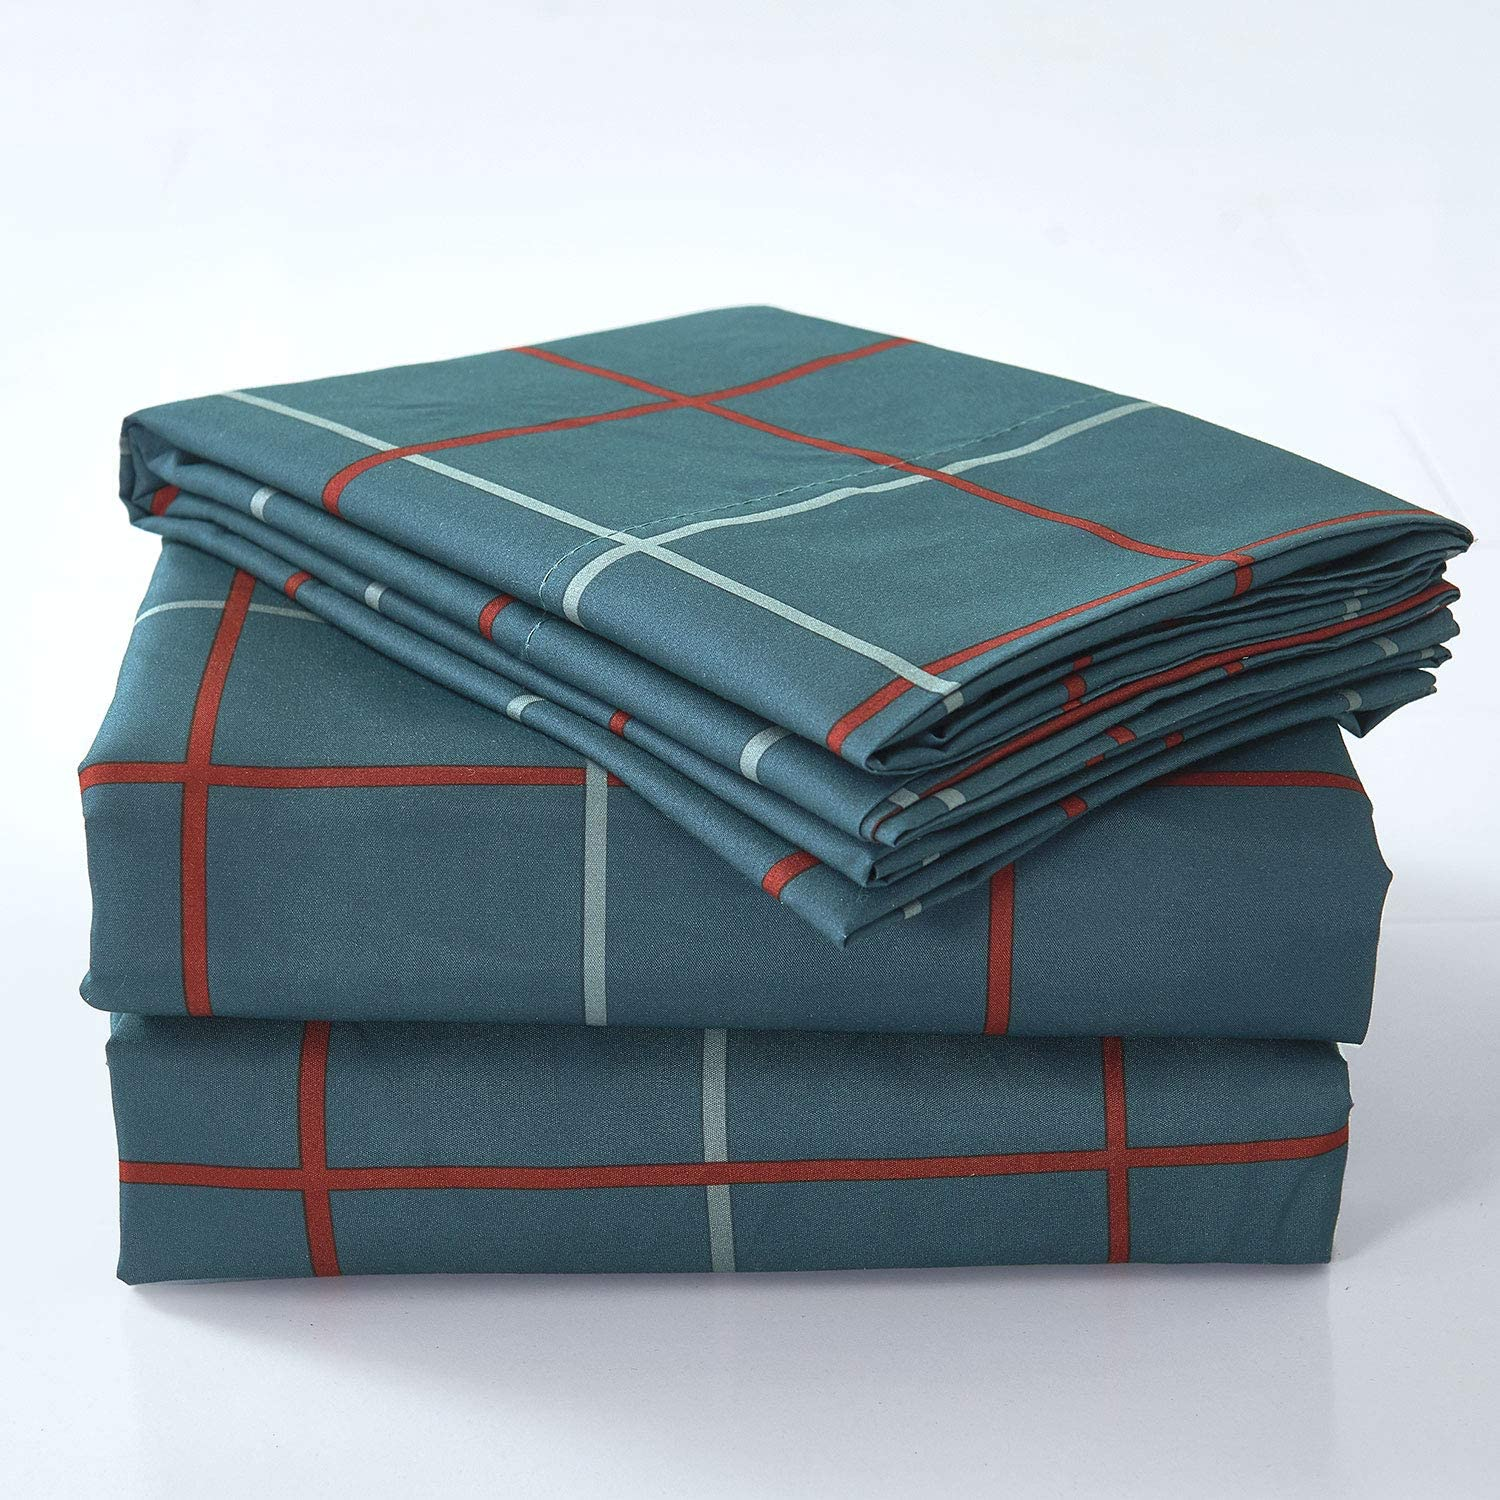 BASIC CHOICE 6 Piece Sheet Set - Luxury Soft 2000 Series Hypoallergenic, Wrinkle & Fade Resistant Bed Sheets (King, London)